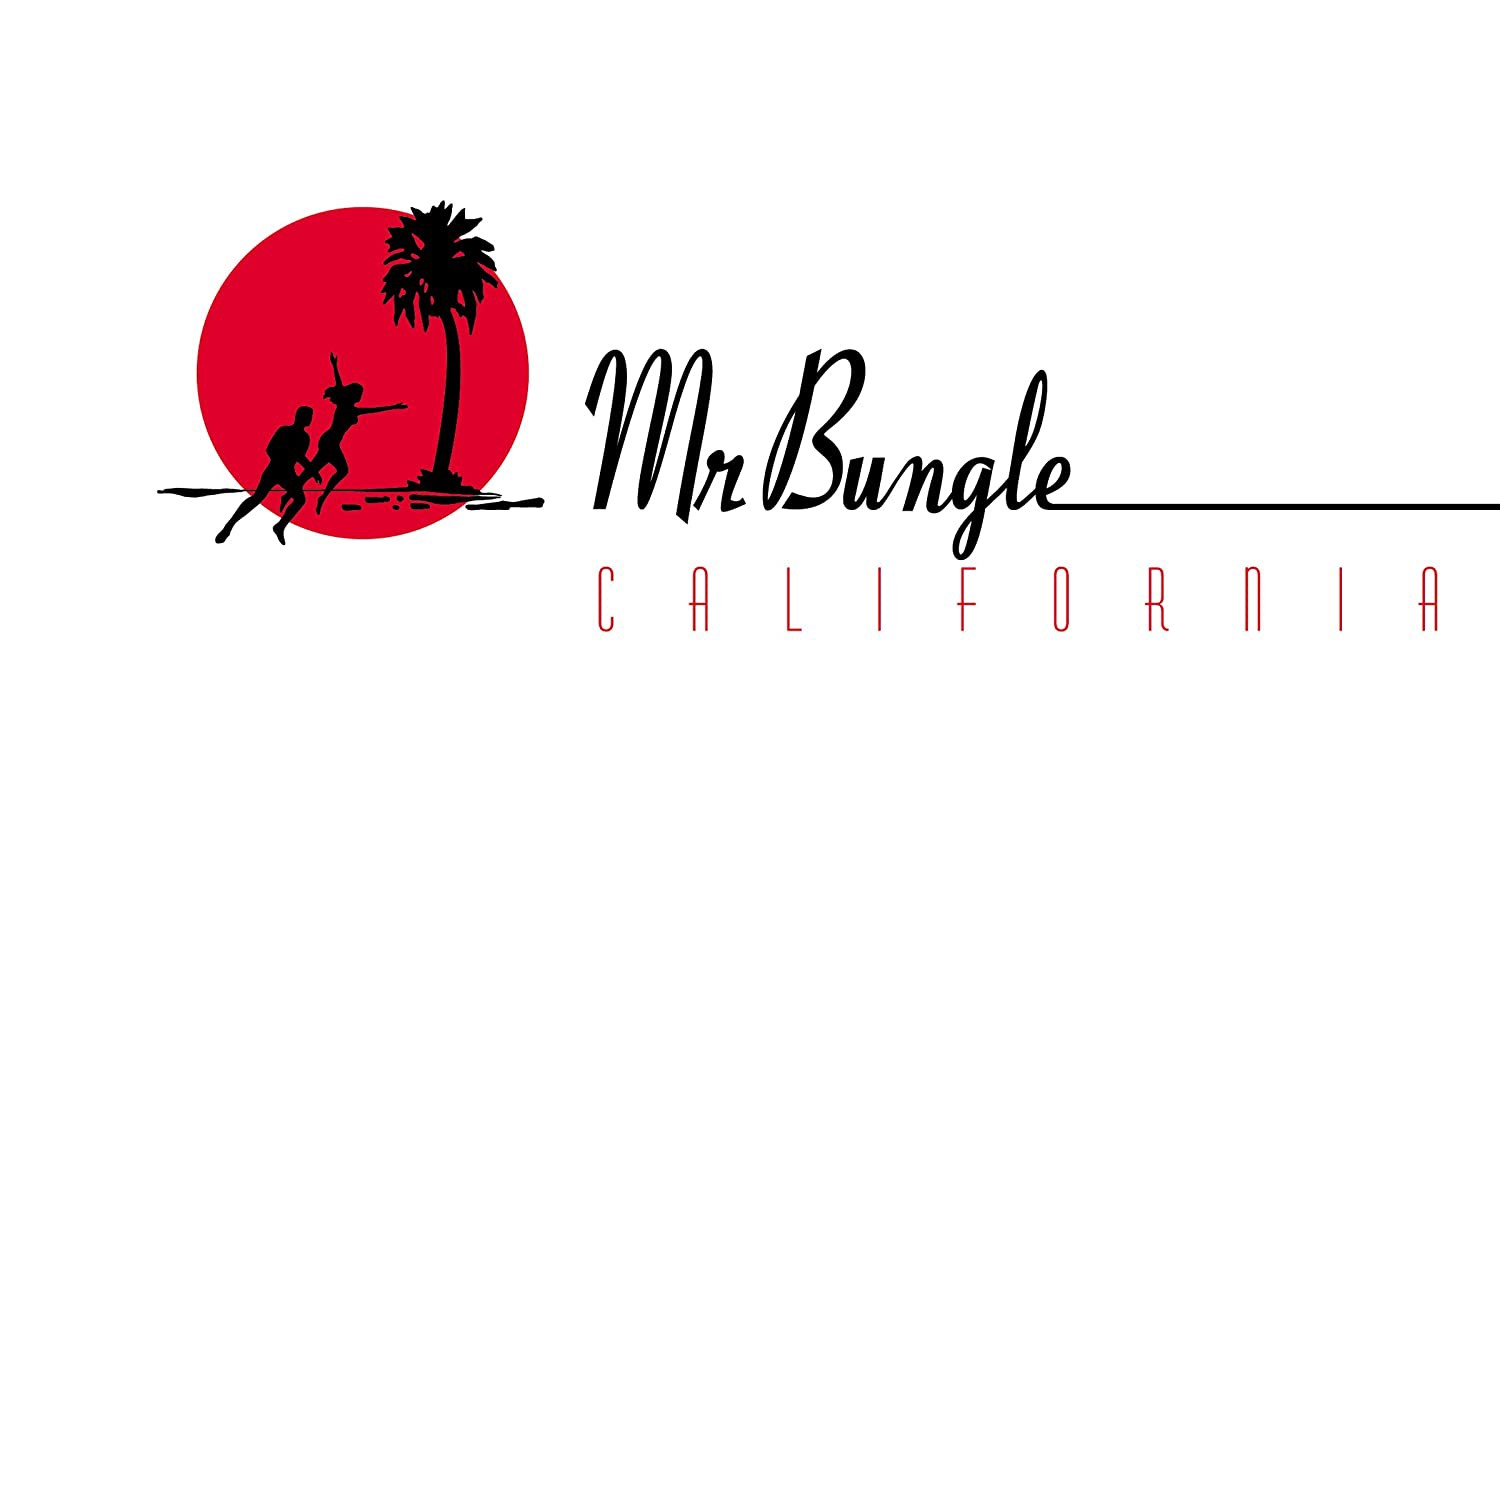 The Mike Patton Corner Mr Bungle S California By Harrison Mains Medium We have song's lyrics, which you can find out below. the mike patton corner mr bungle s